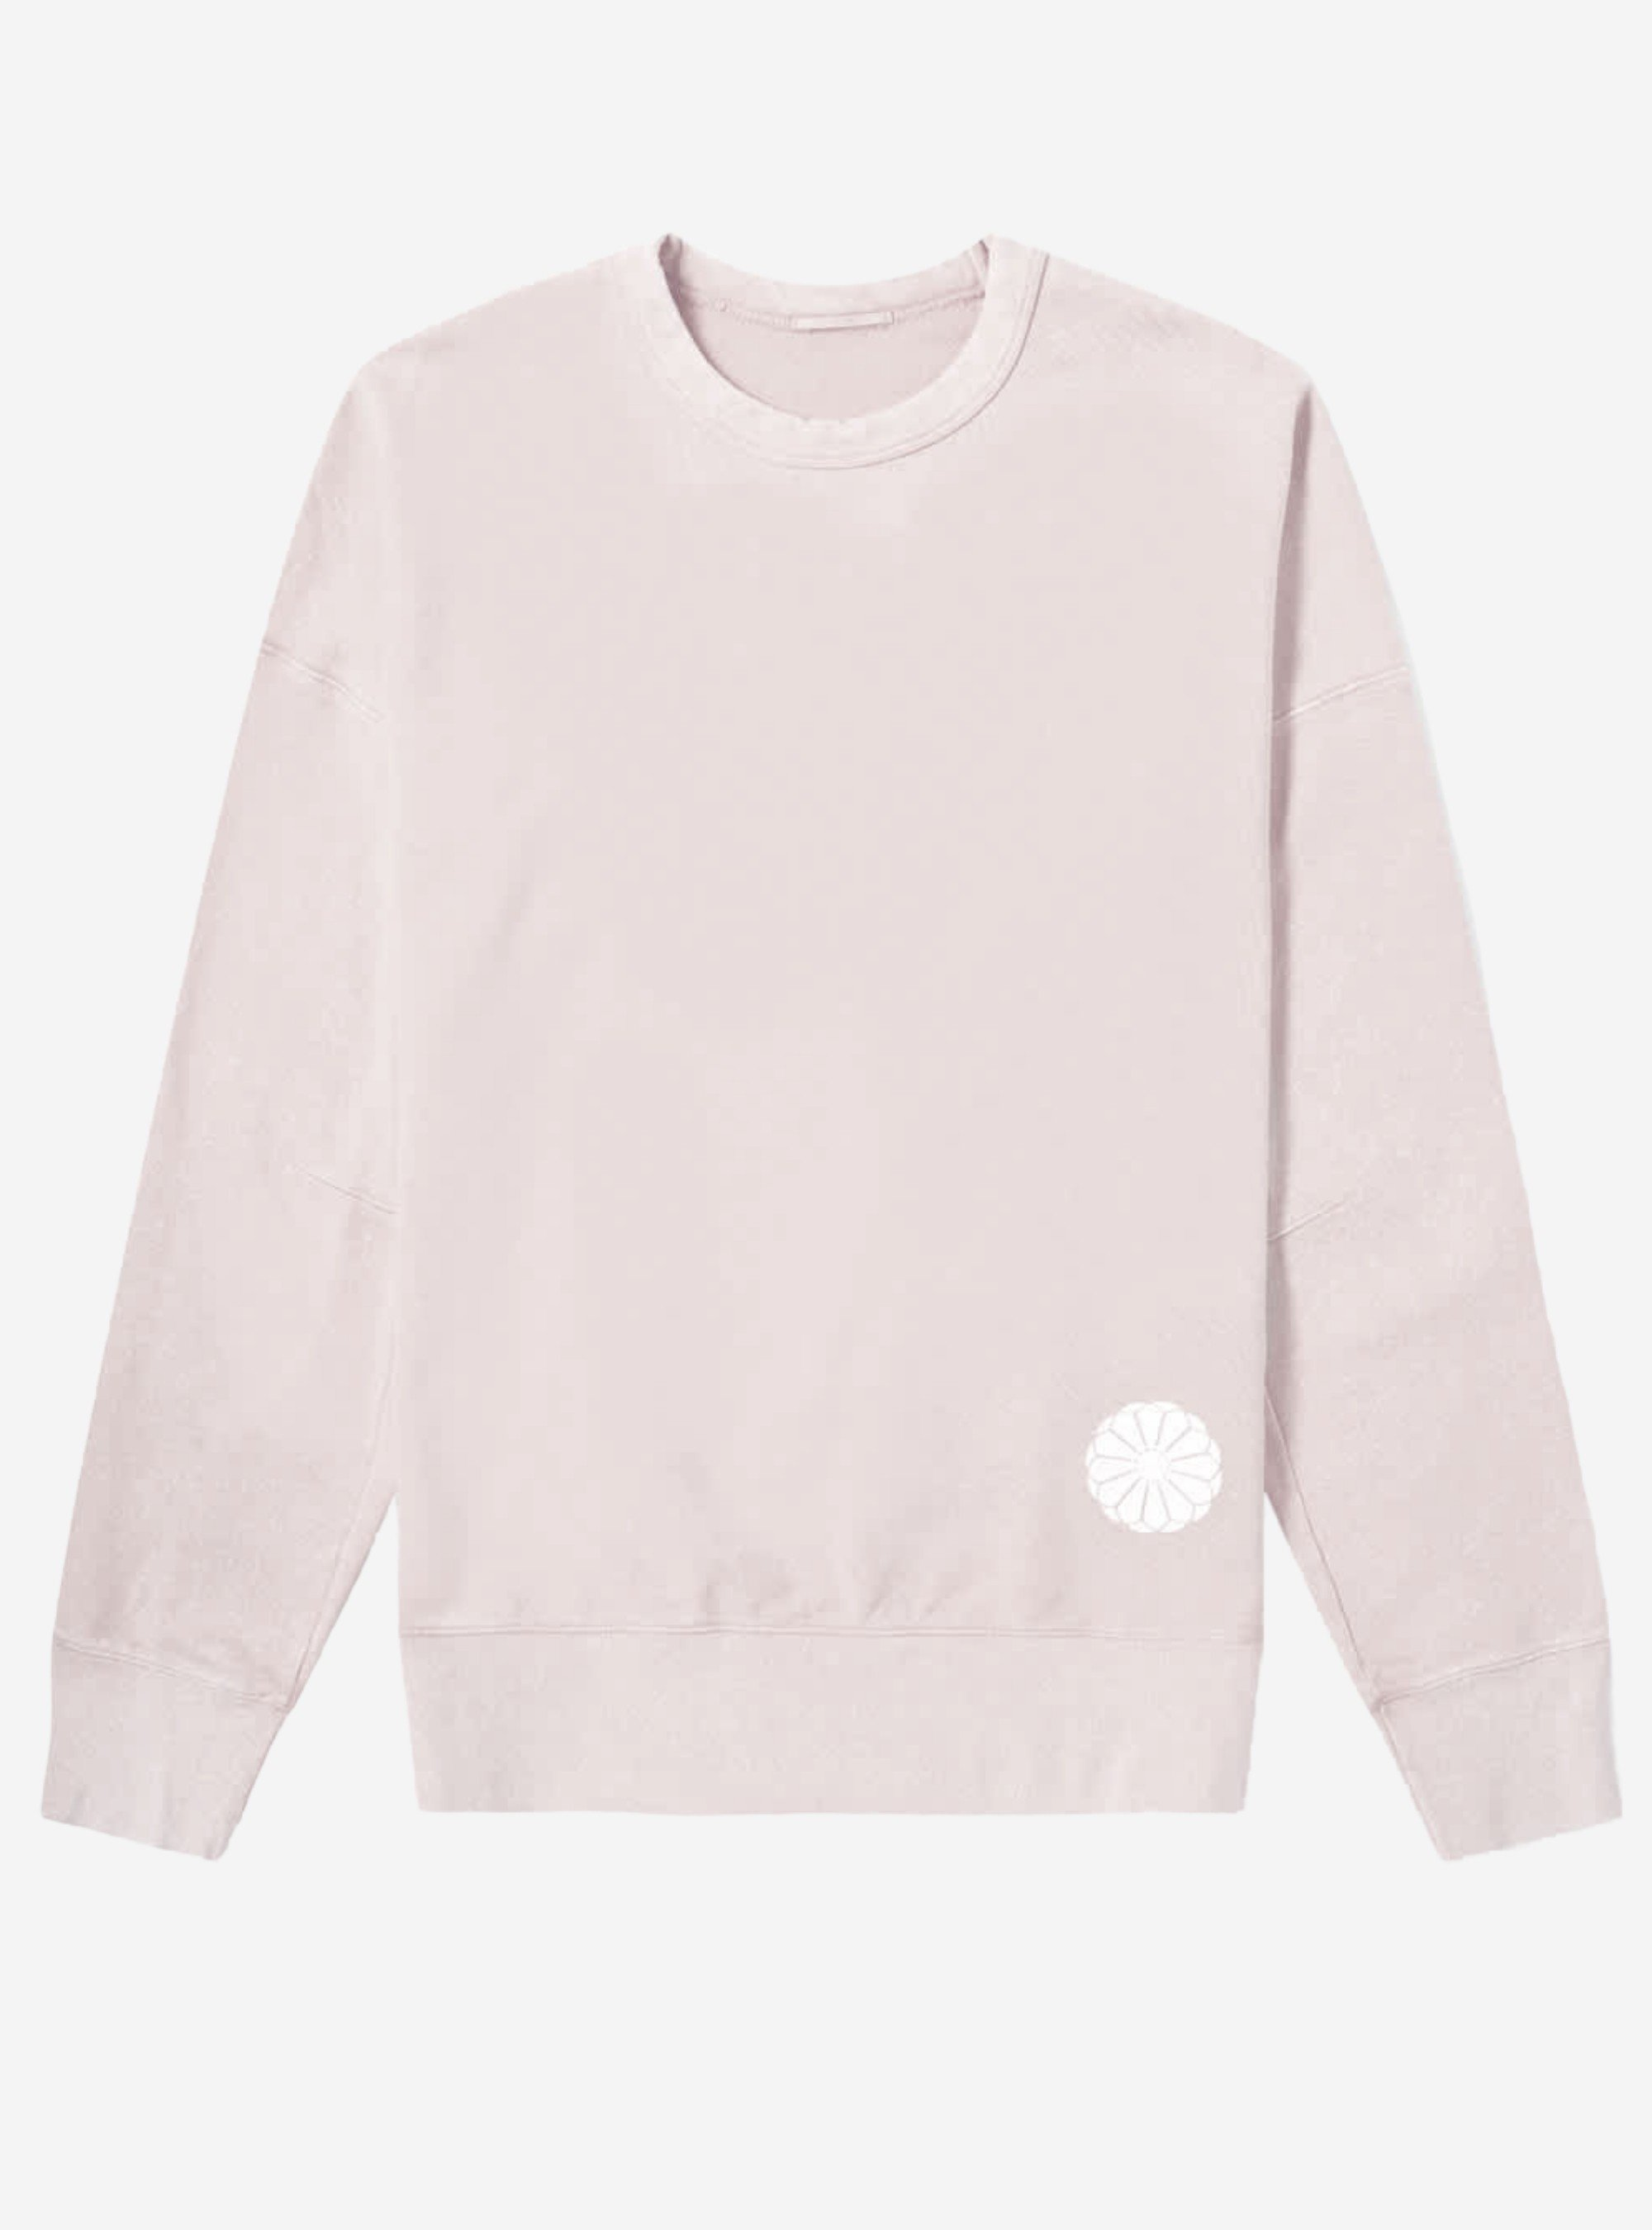 TEN C - LOGO PATCH SWEAT - Mauve Pink - TEN C